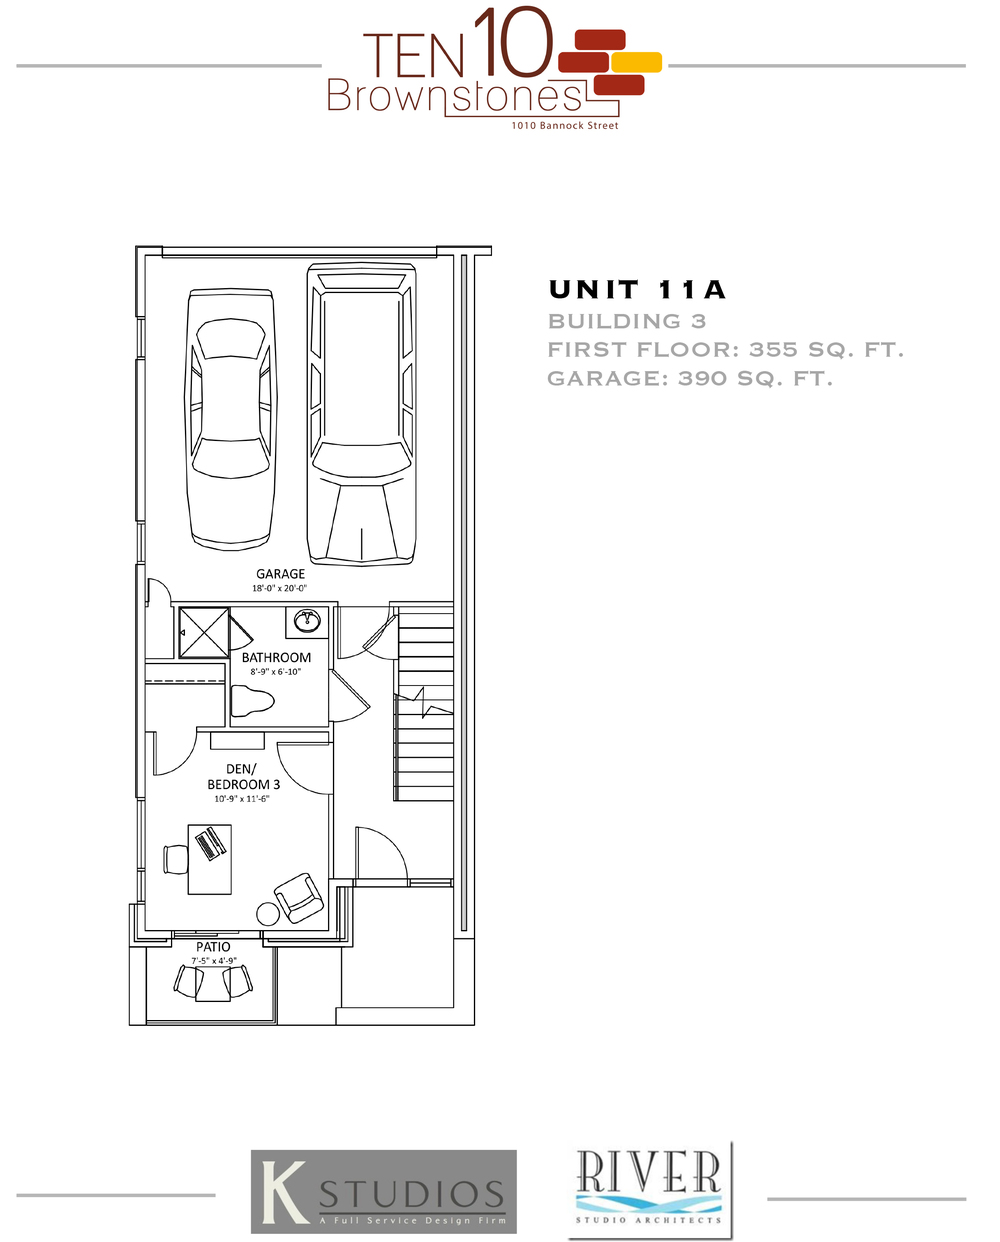 Click image to view & download Unit 11A floor plan